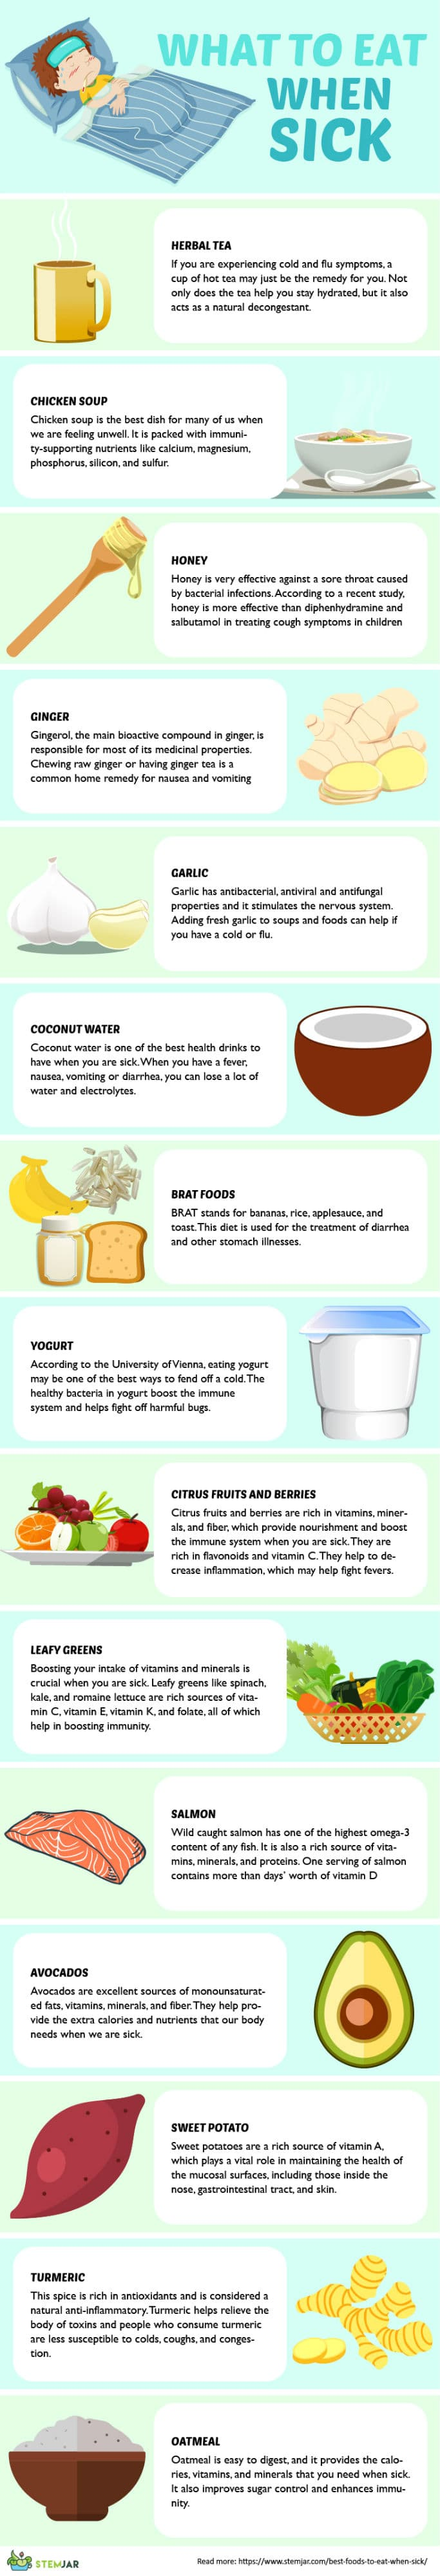 15 best foods to eat when you are sick [6th is best] stemjarbest foods to eat when sick infographic